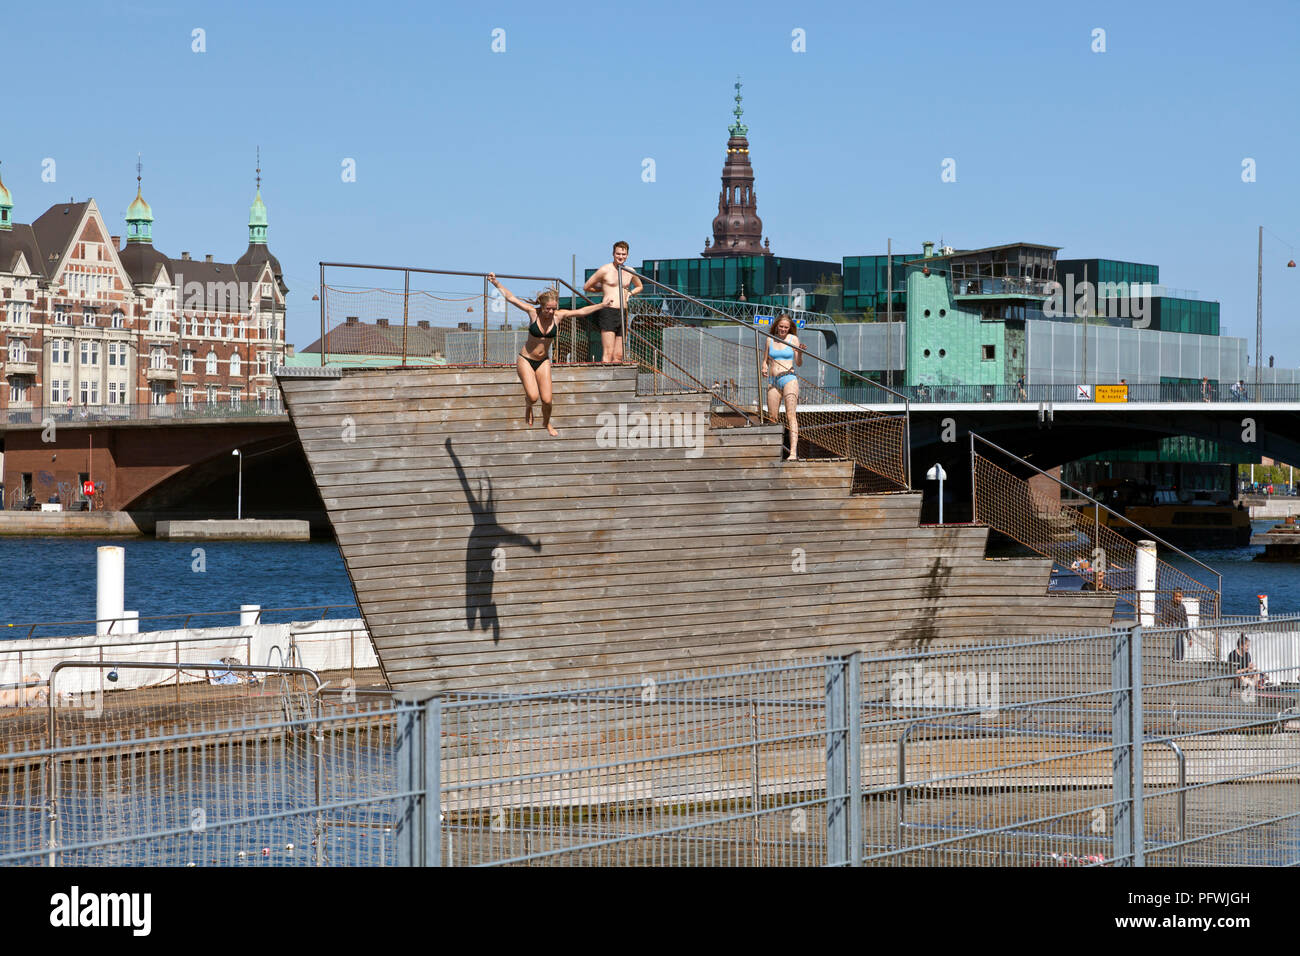 Girl jumping from the diving tower of Islands Brygge Harbour Bath in the inner harbour in central Copenhagen, Denmark on a sunny and warm summer's day Stock Photo